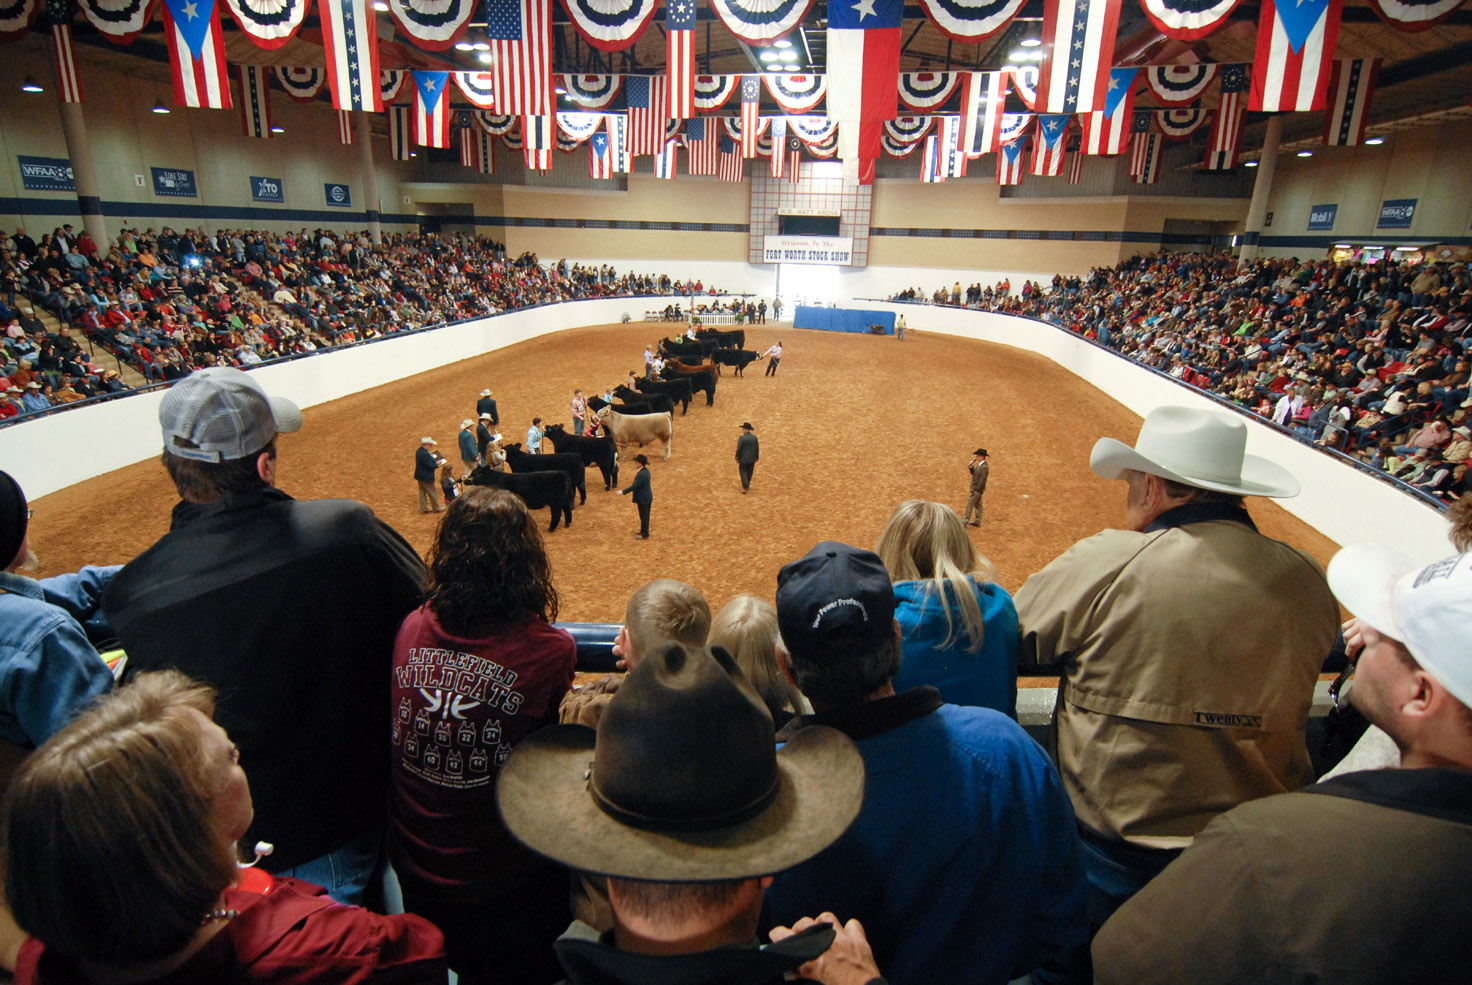 Behind The Scenes Photos At 2014 Fort Worth Stock Show And